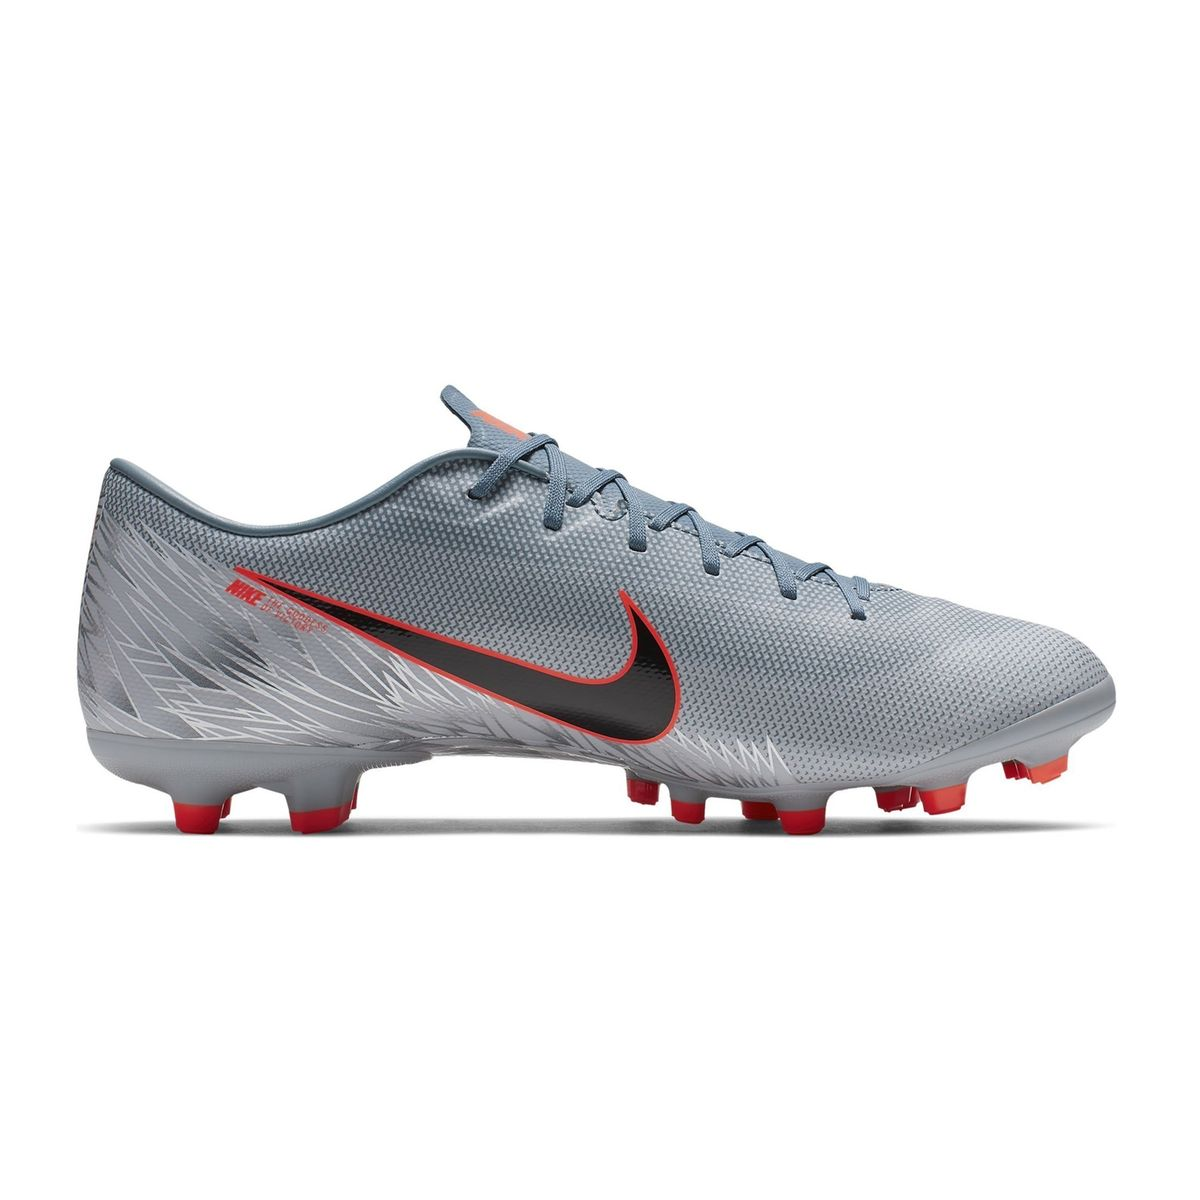 Chaussures Football Nike Mercurial Vapor Xii Academy Mg Gris